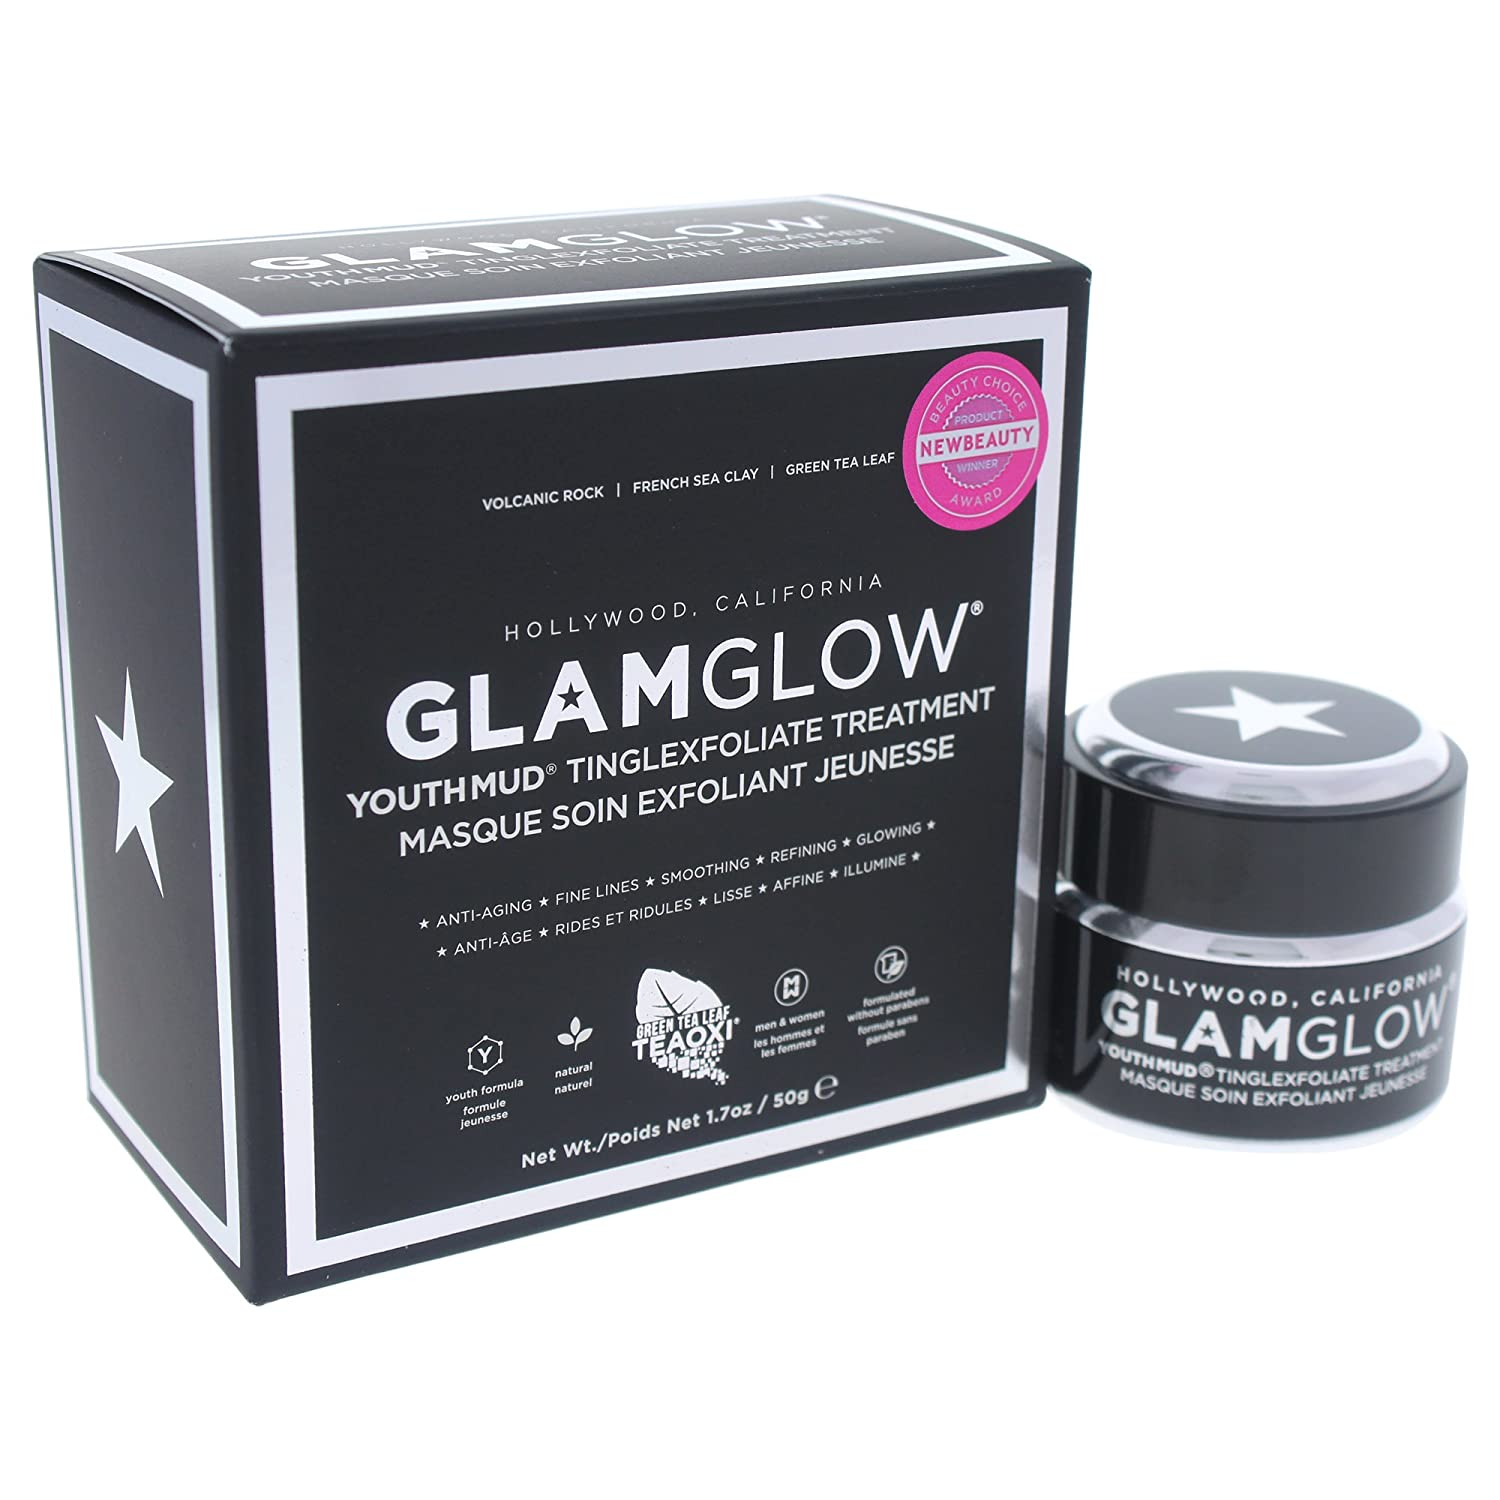 Glamglow Facial Treatment Cream, Youth Mud Black, 1.7 Ounce GG1001